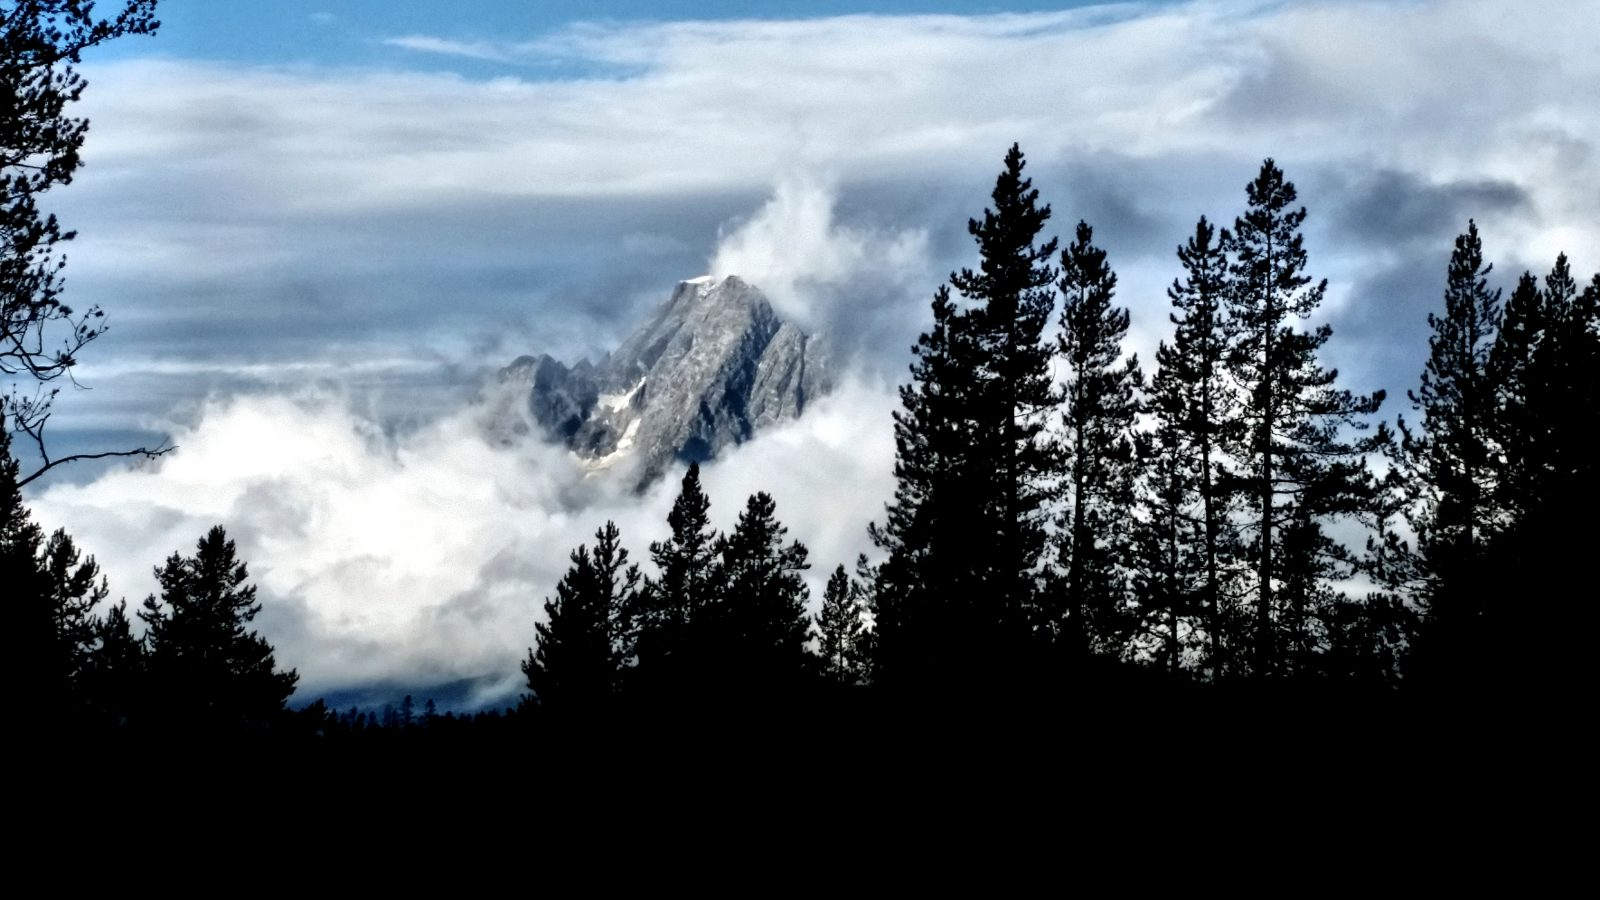 THE GRAND TETON SPLENDOR